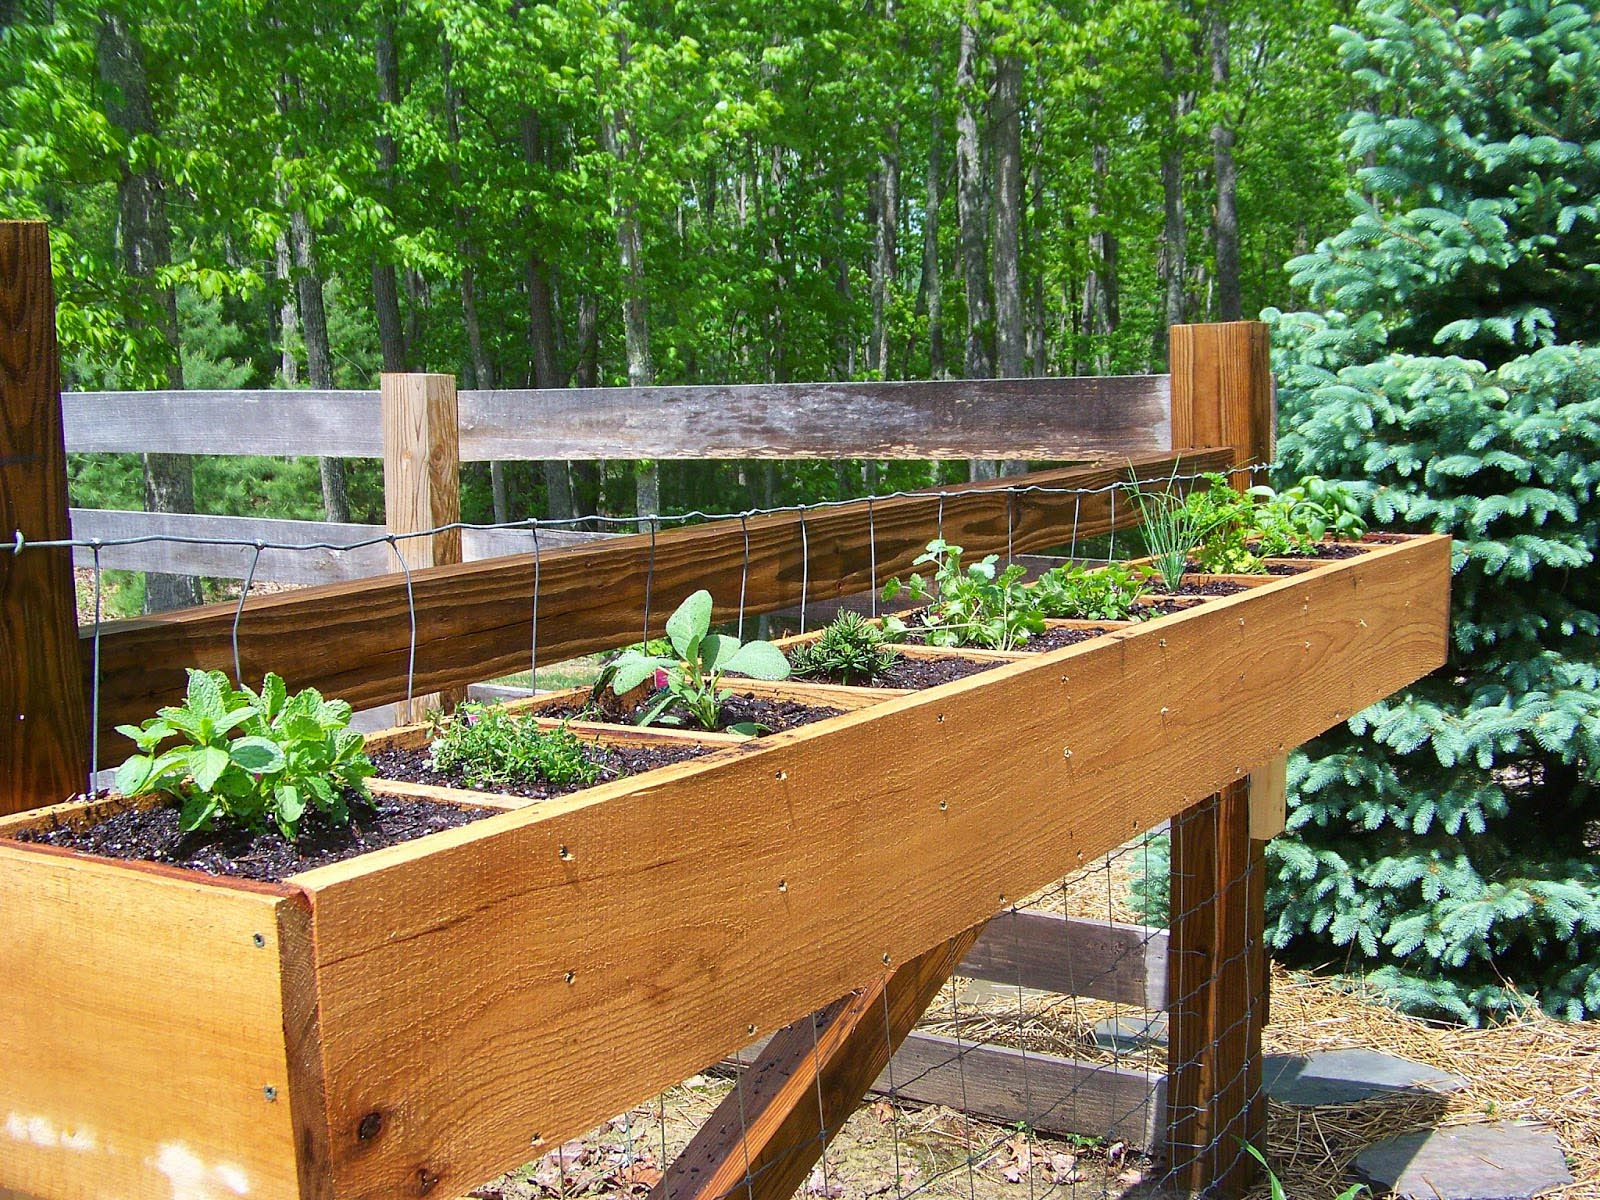 Herb garden planter ideas garden design ideas for Outdoor planter ideas